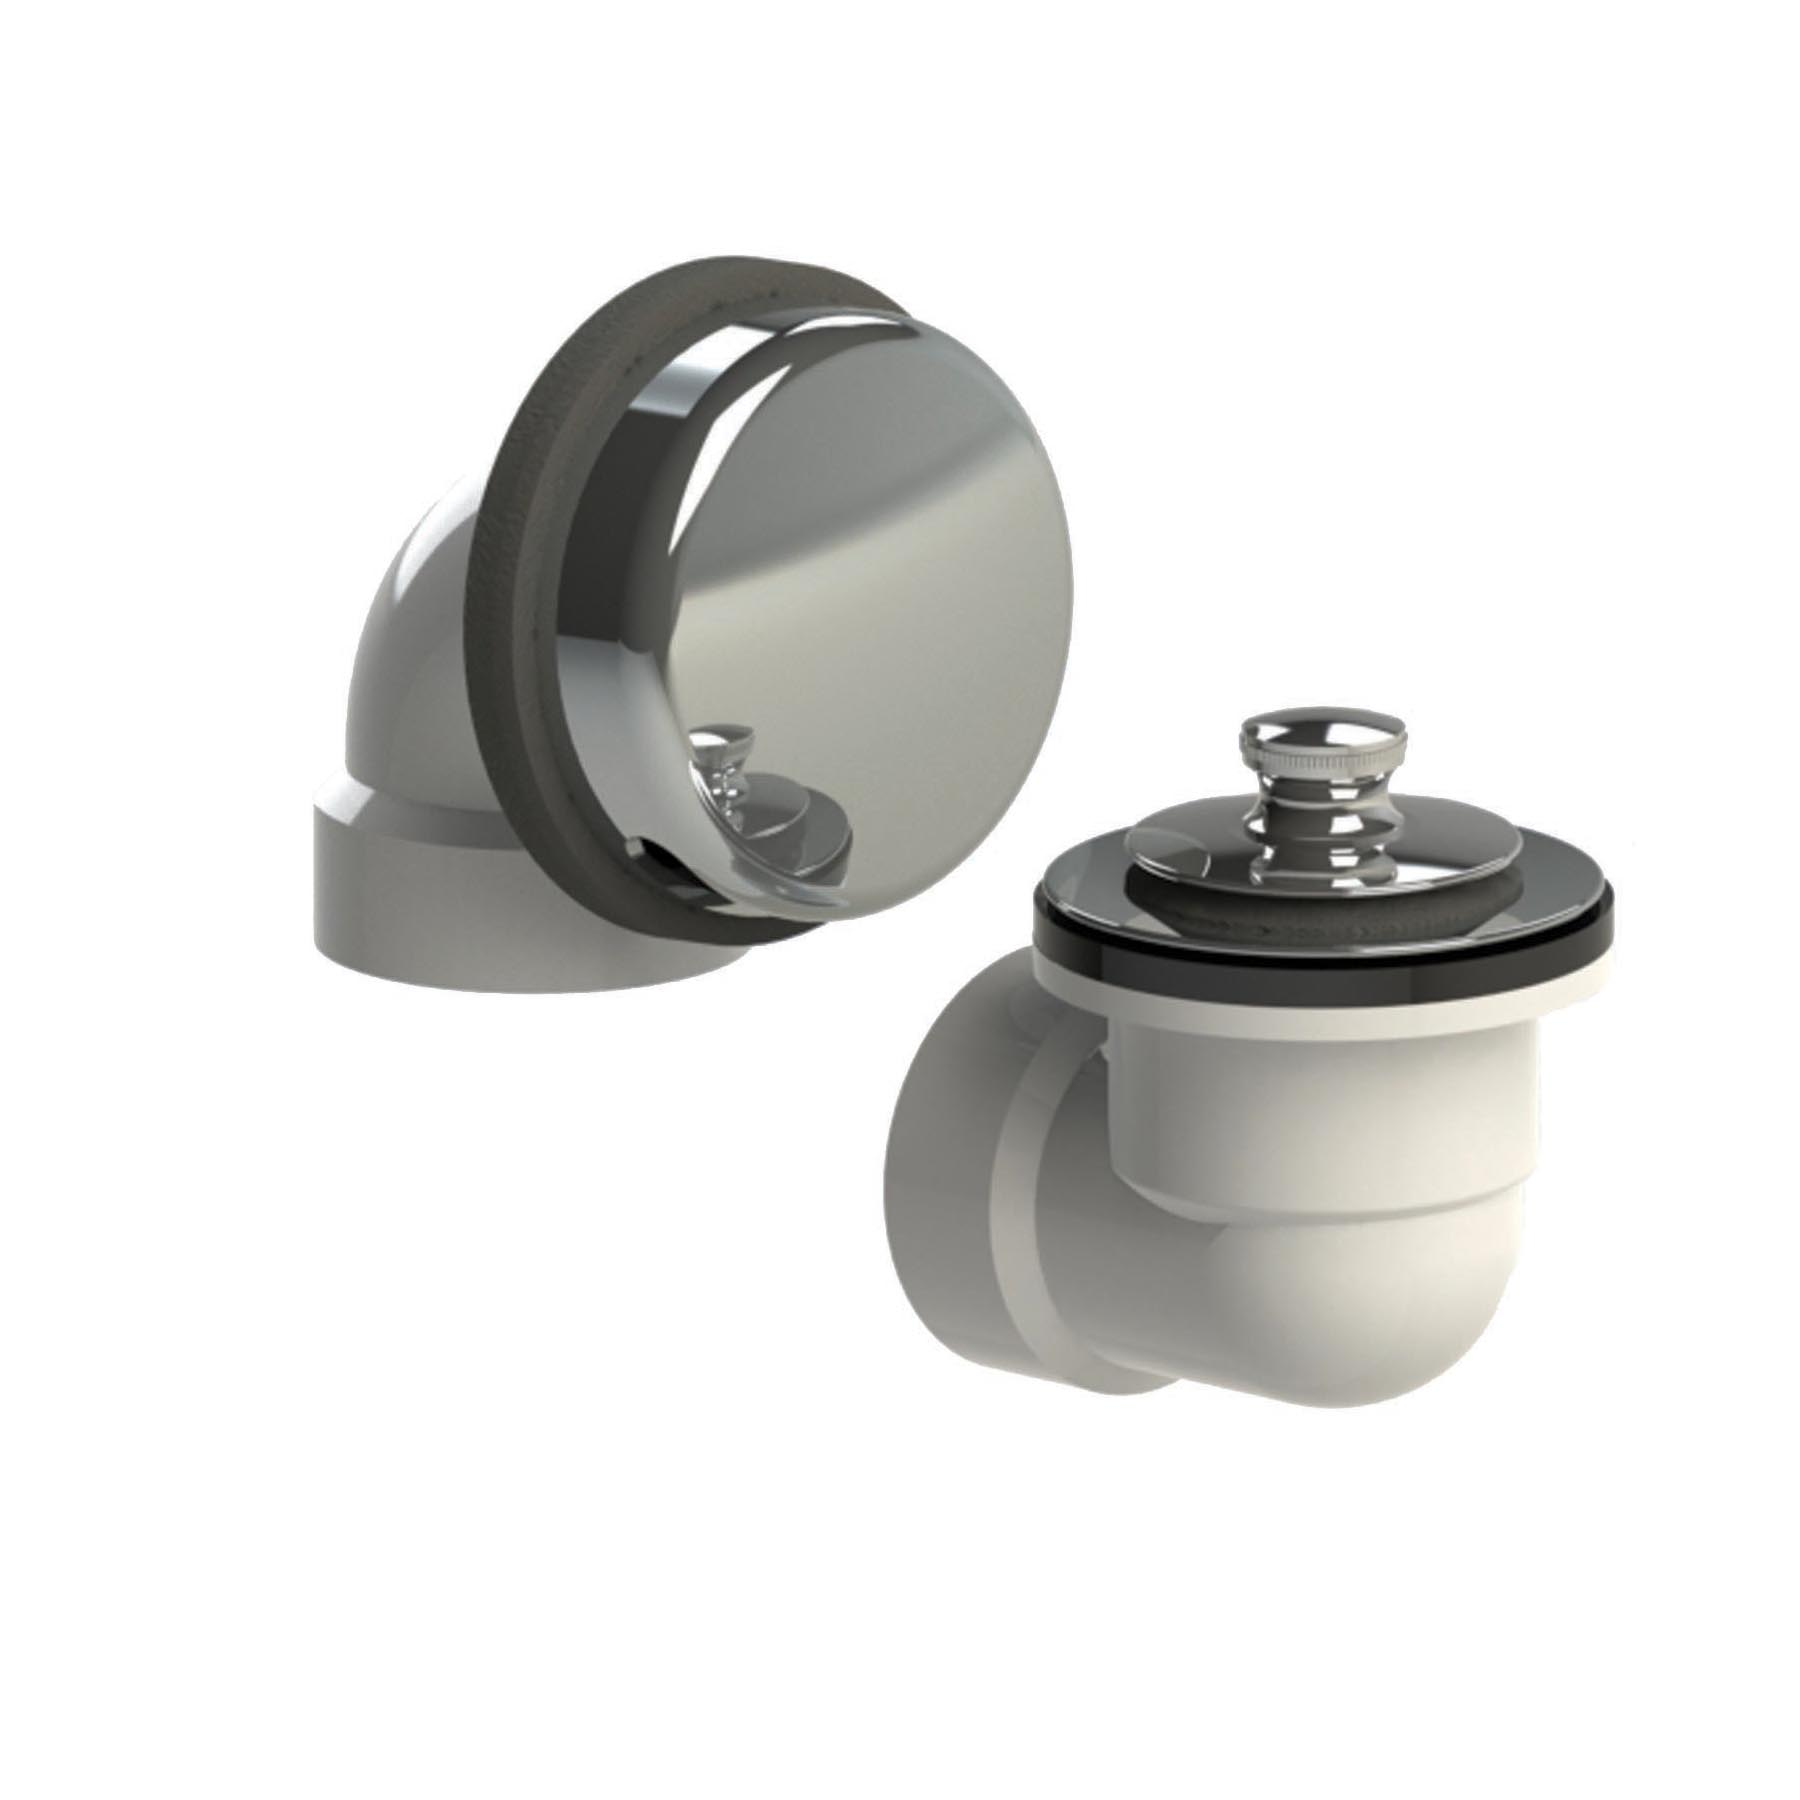 Watco® 901-LT-PVC-CP Innovator® 901 Bath Waste Half Kit With Chrome Plated Lift and Turn Stopper, PVC, Domestic